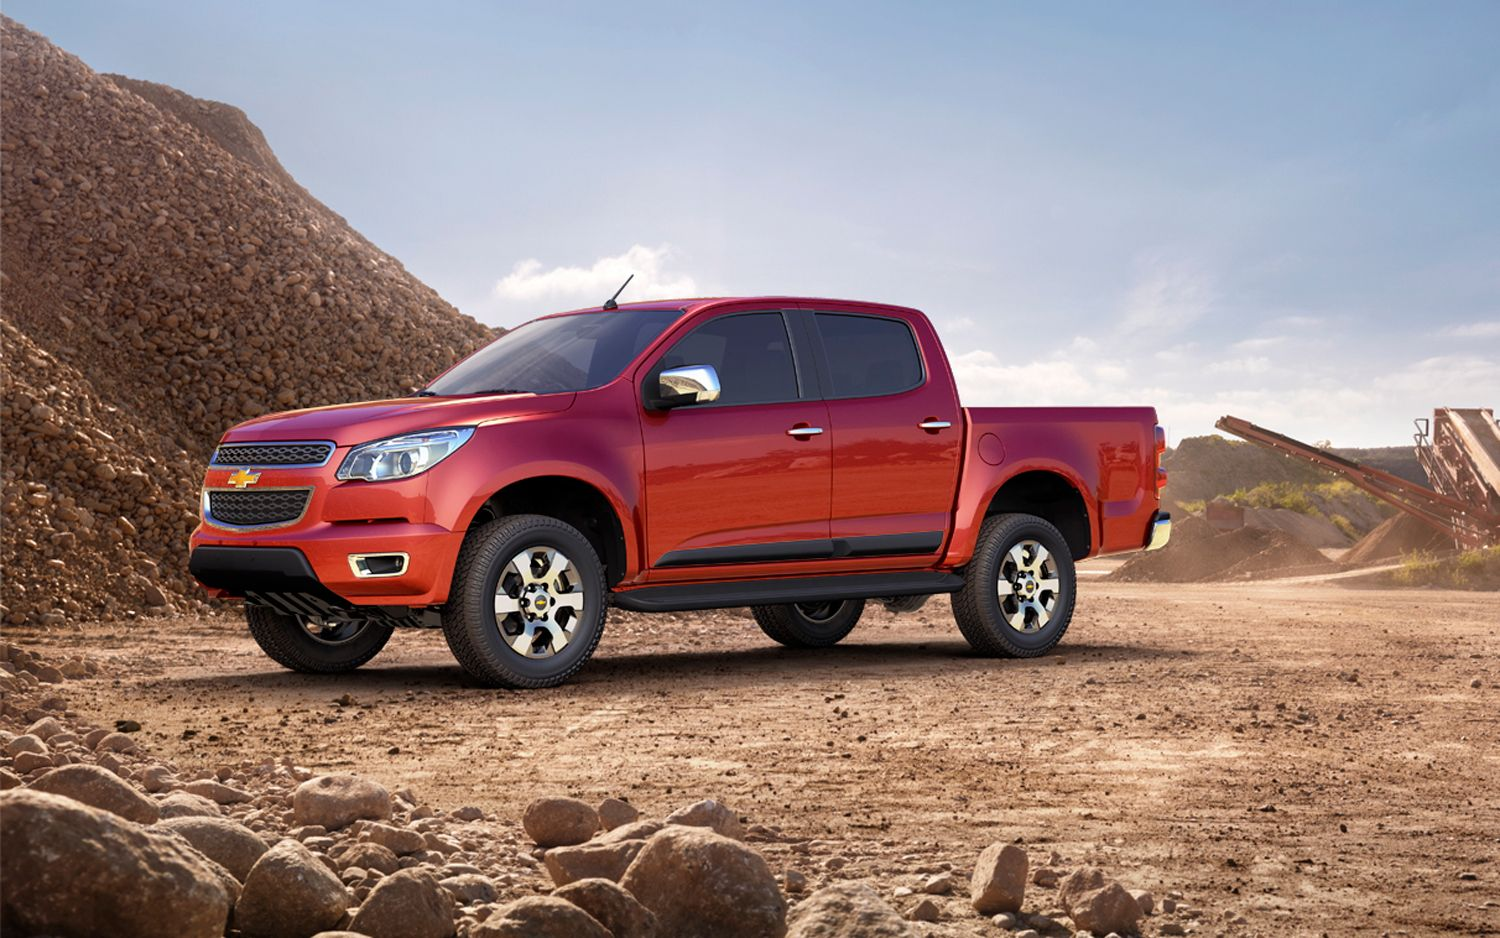 Gm confirms new chevrolet colorado pickup for u s wot on motor trend